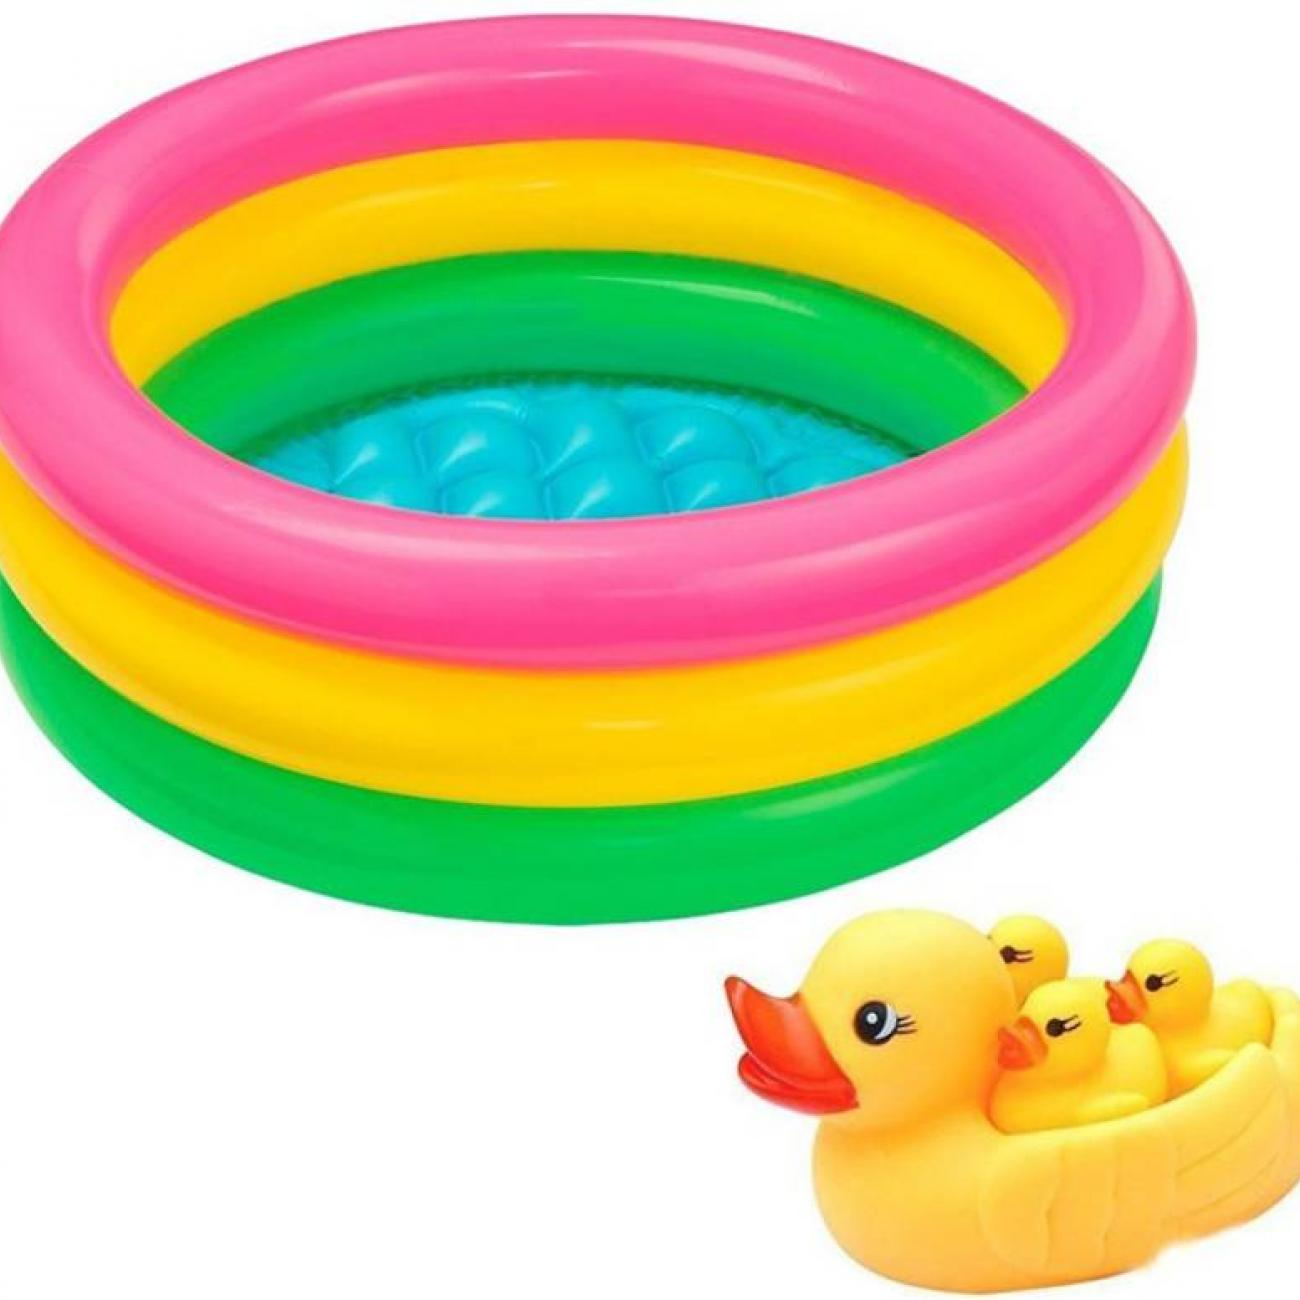 2ft-bath-tub-and-duck-toy-for-baby-speoma-original-imaffw4753wdjeur